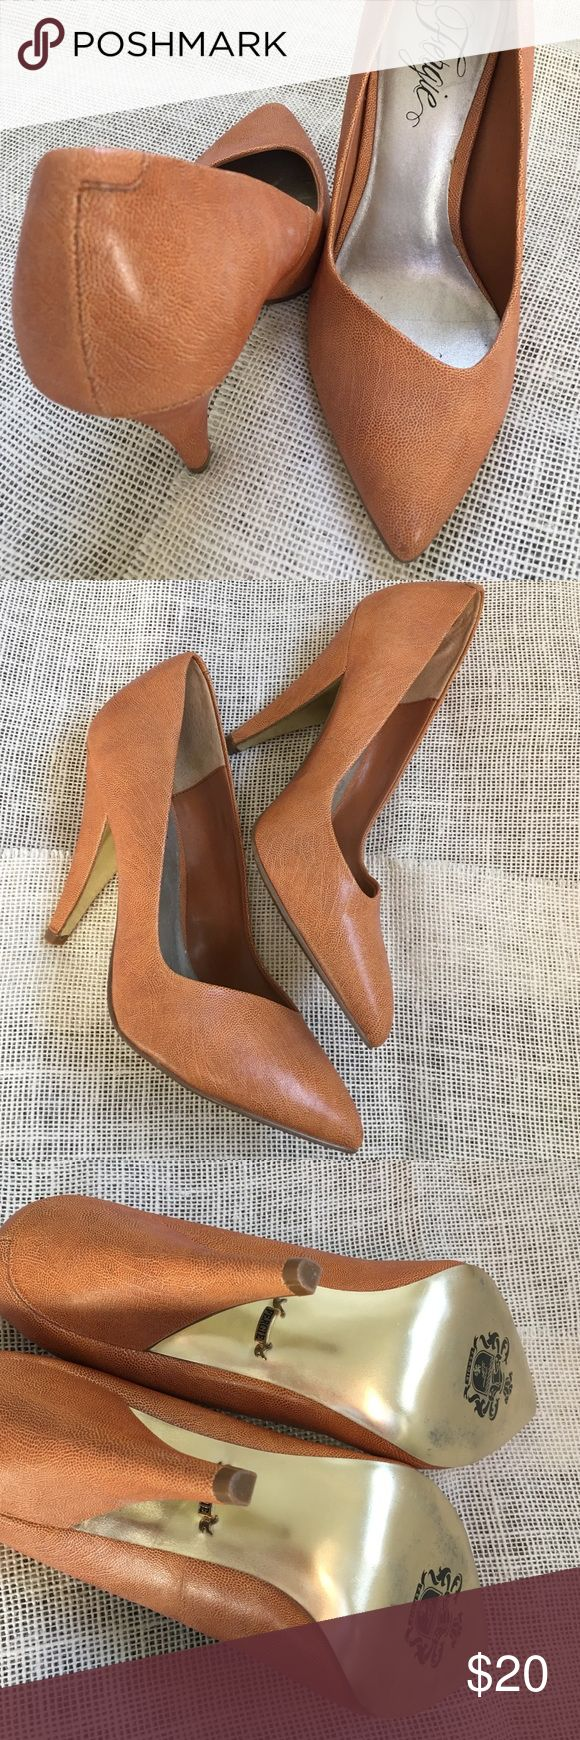 Fergie shoes 👠 Gently loved pumps wore only twice, cute with jeans. Color is like a burnt orange Fergie Shoes